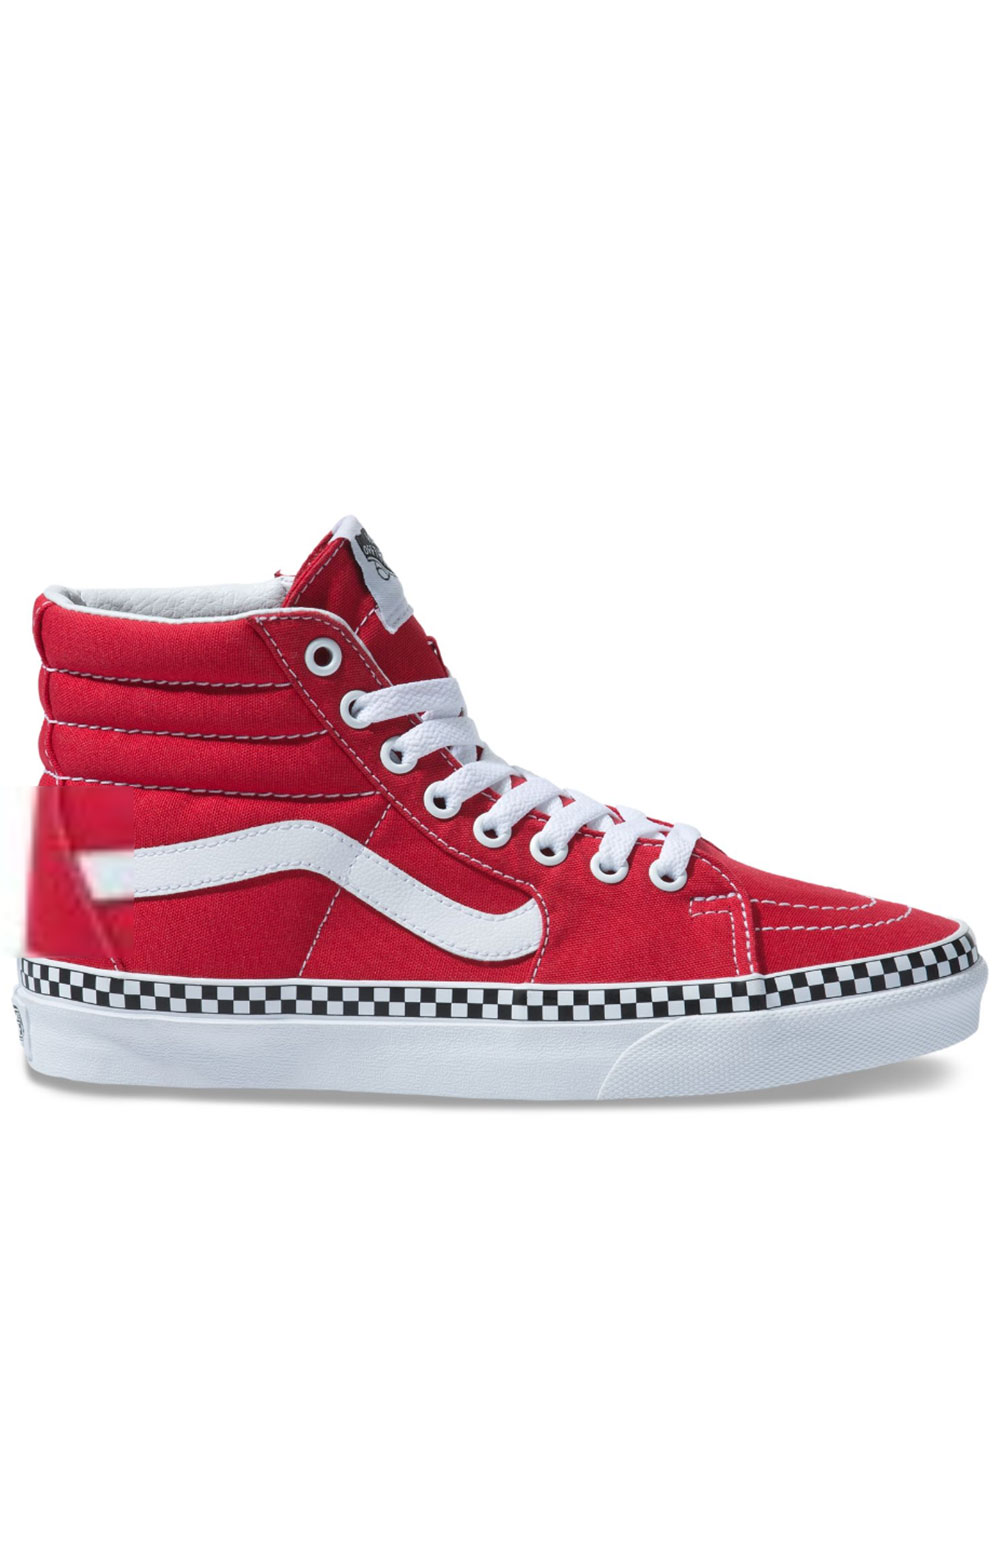 (8GEVS5) Check Foxing Sk8-Hi Shoe - Racing Red